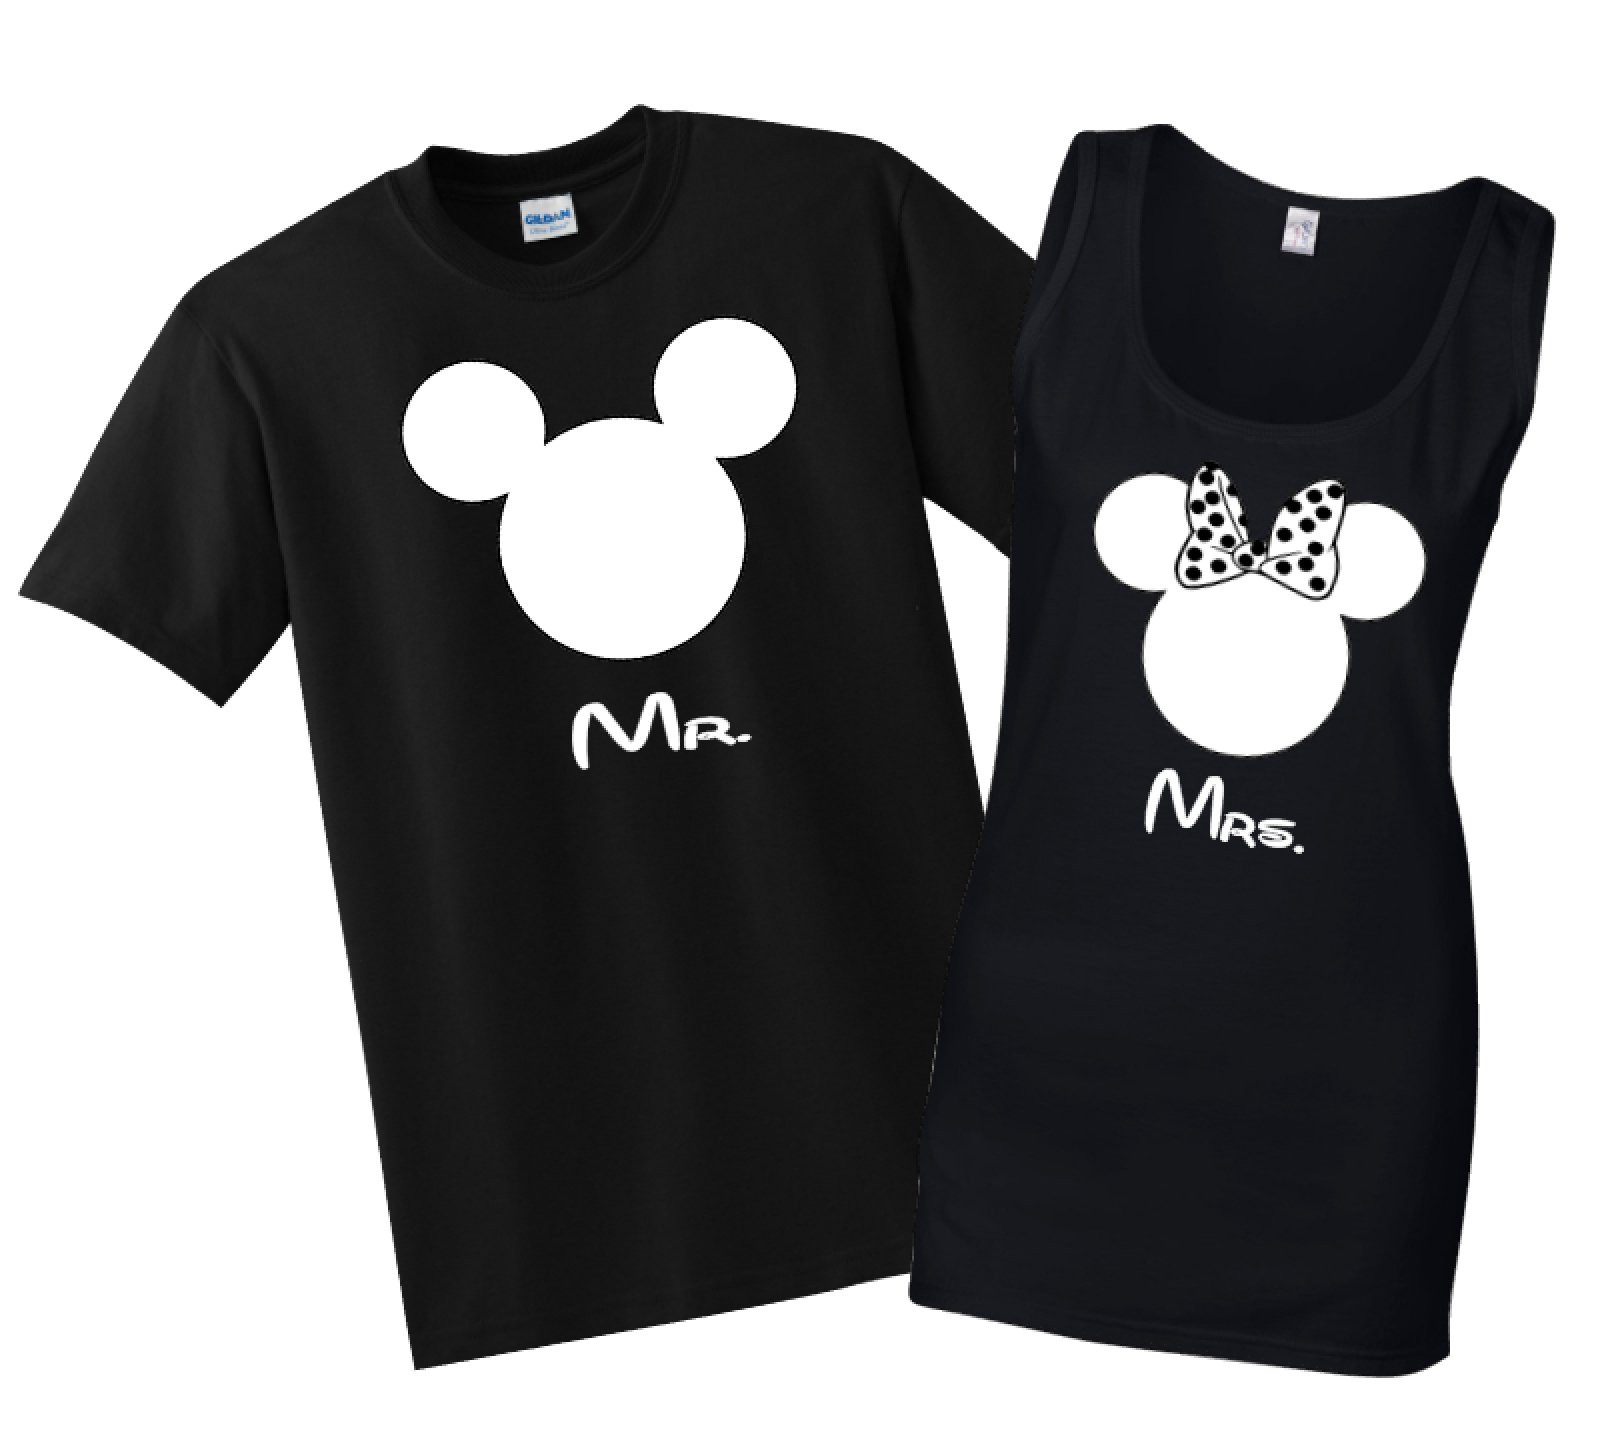 Black t shirt custom - Disney Family Mr Mrs Custom T Shirts Black The Official Site Of Logan To Layla